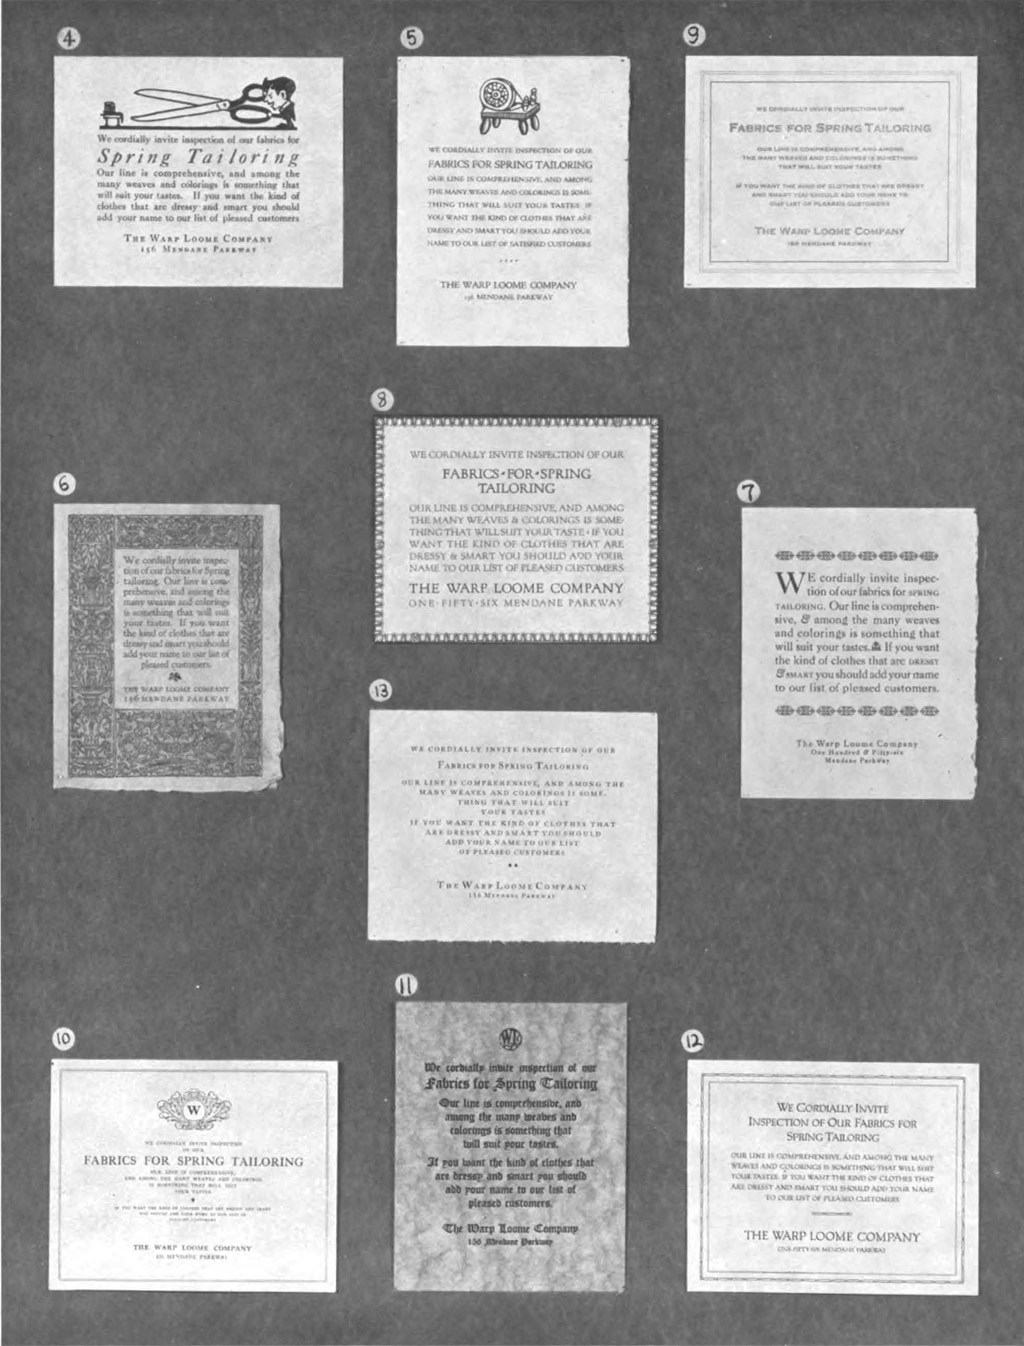 Winners 4 to 13 of the Tailor's Announcement Contest. The American Printer vol. 62, no. 11 (June 5, 1916), following p. 40.